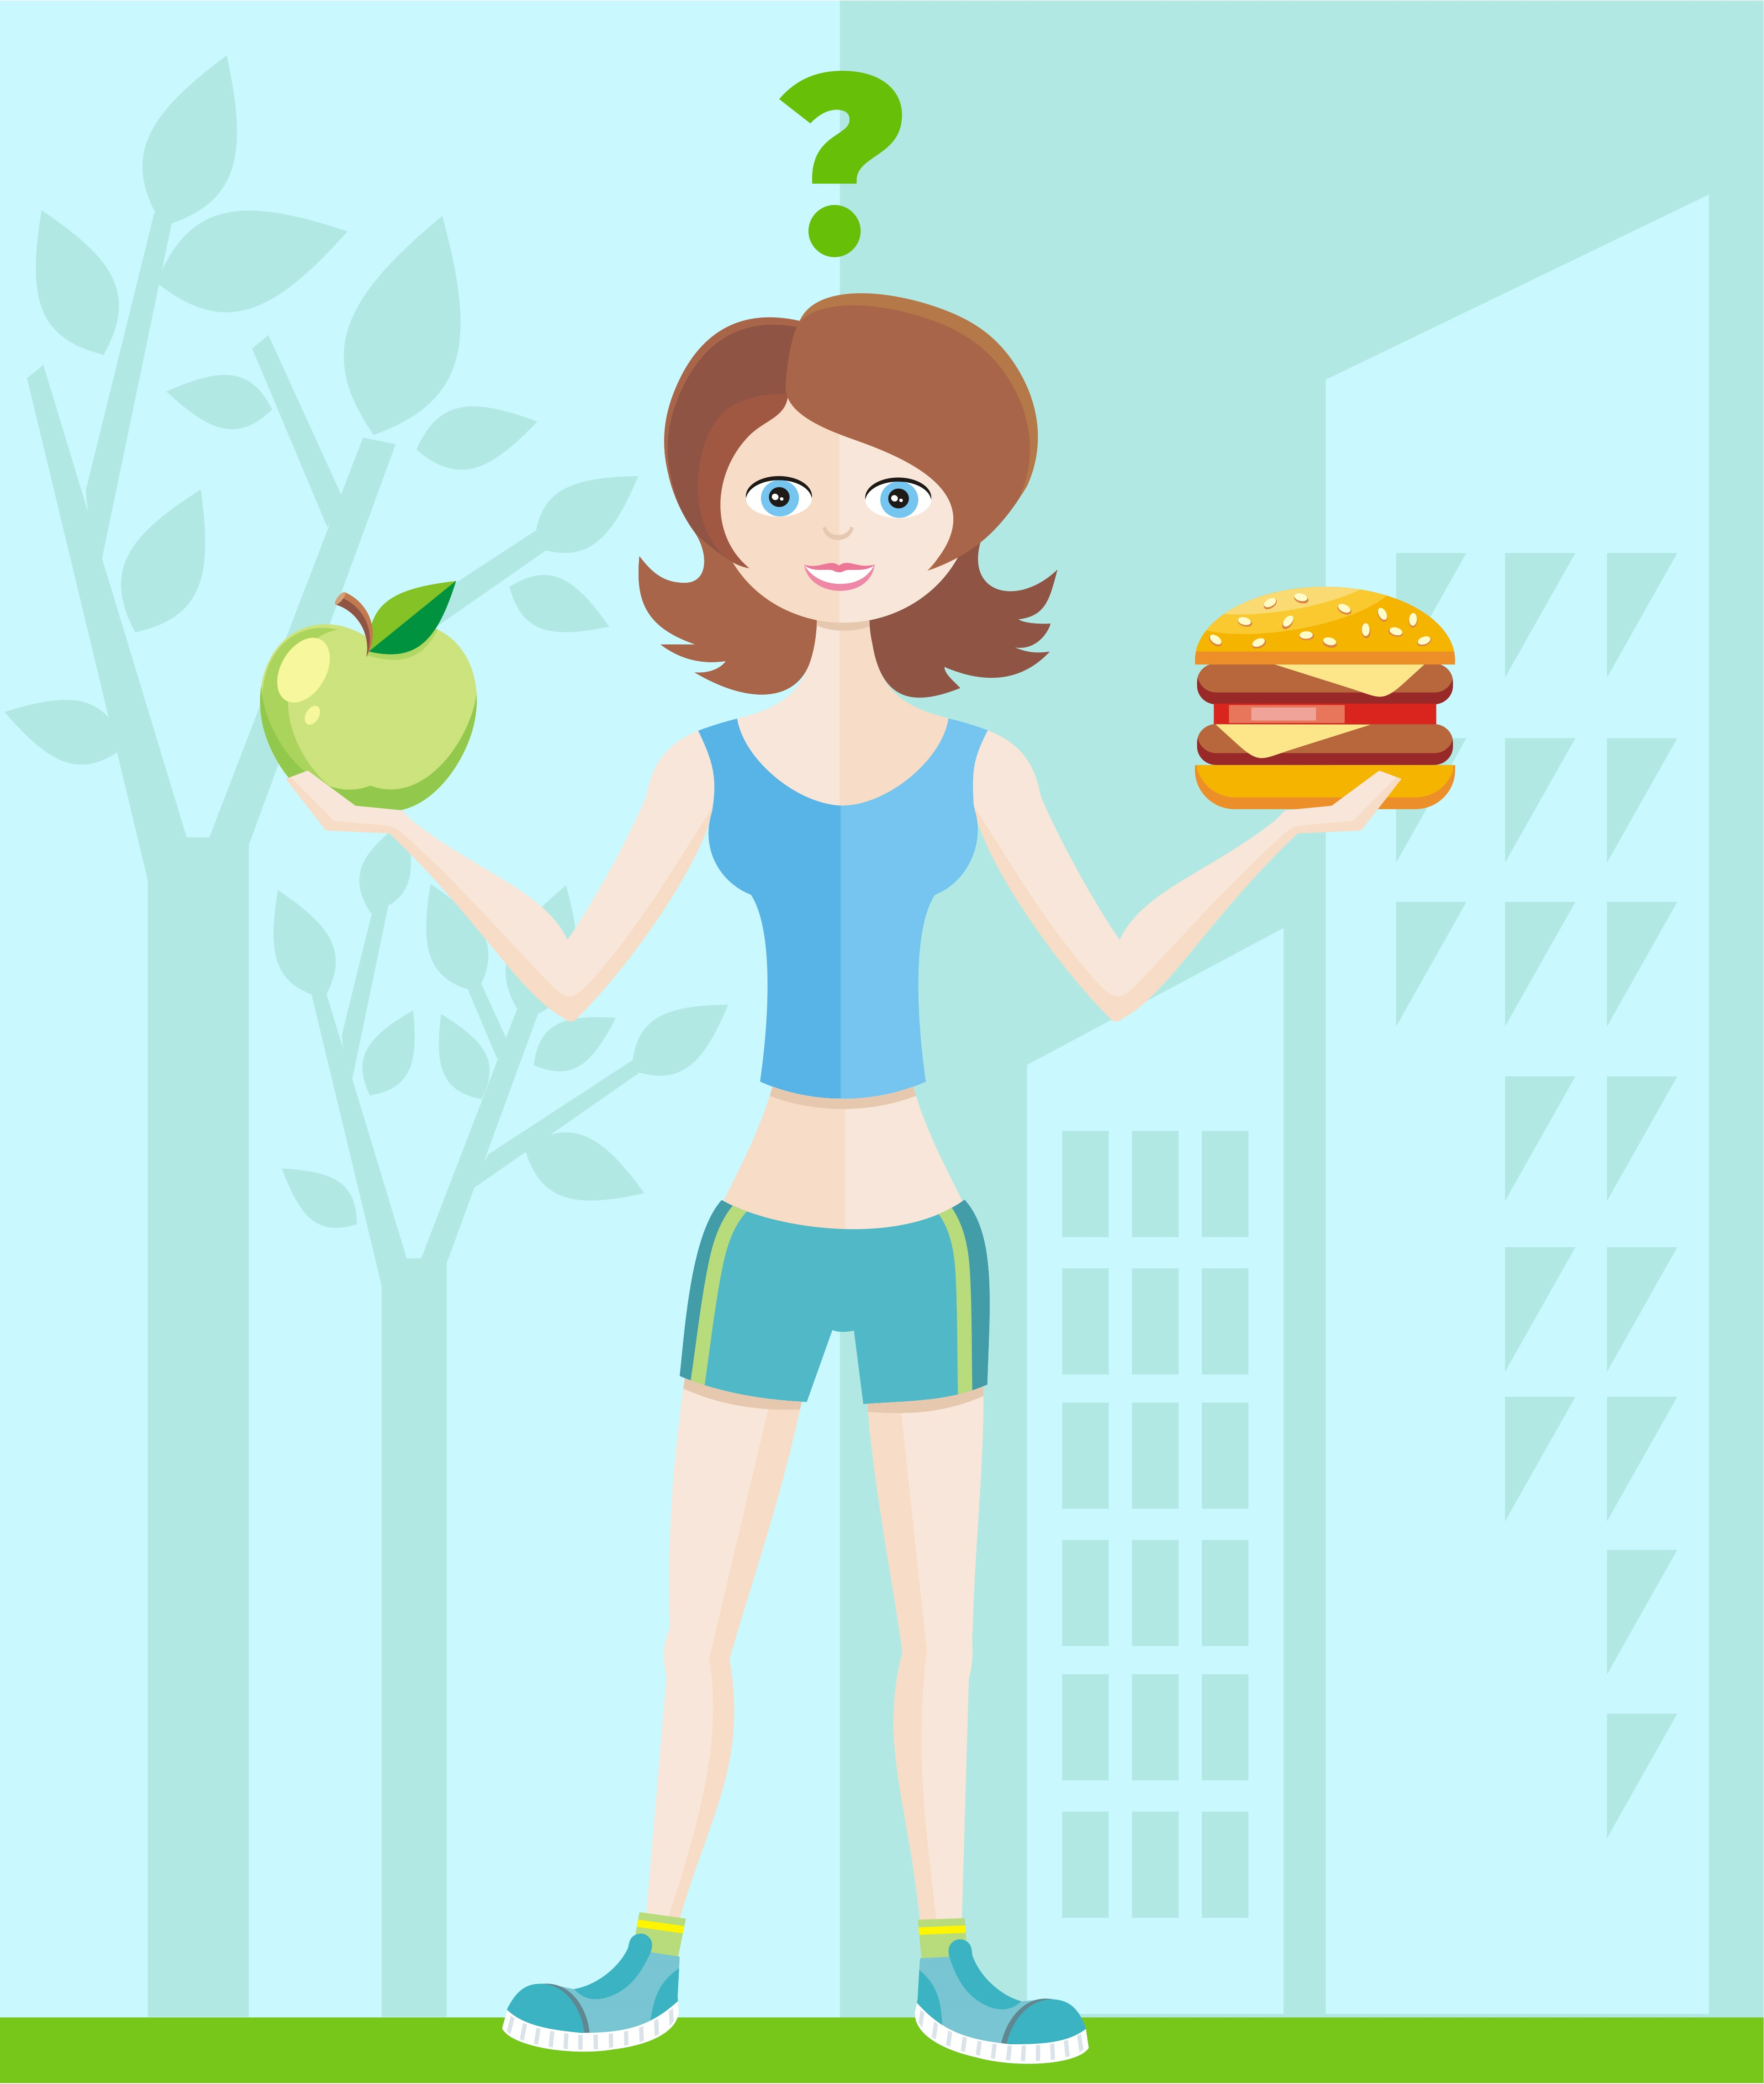 Healthy lifestyle and dieting concept with woman in sportswear choosing between eat green apple or hamburger.